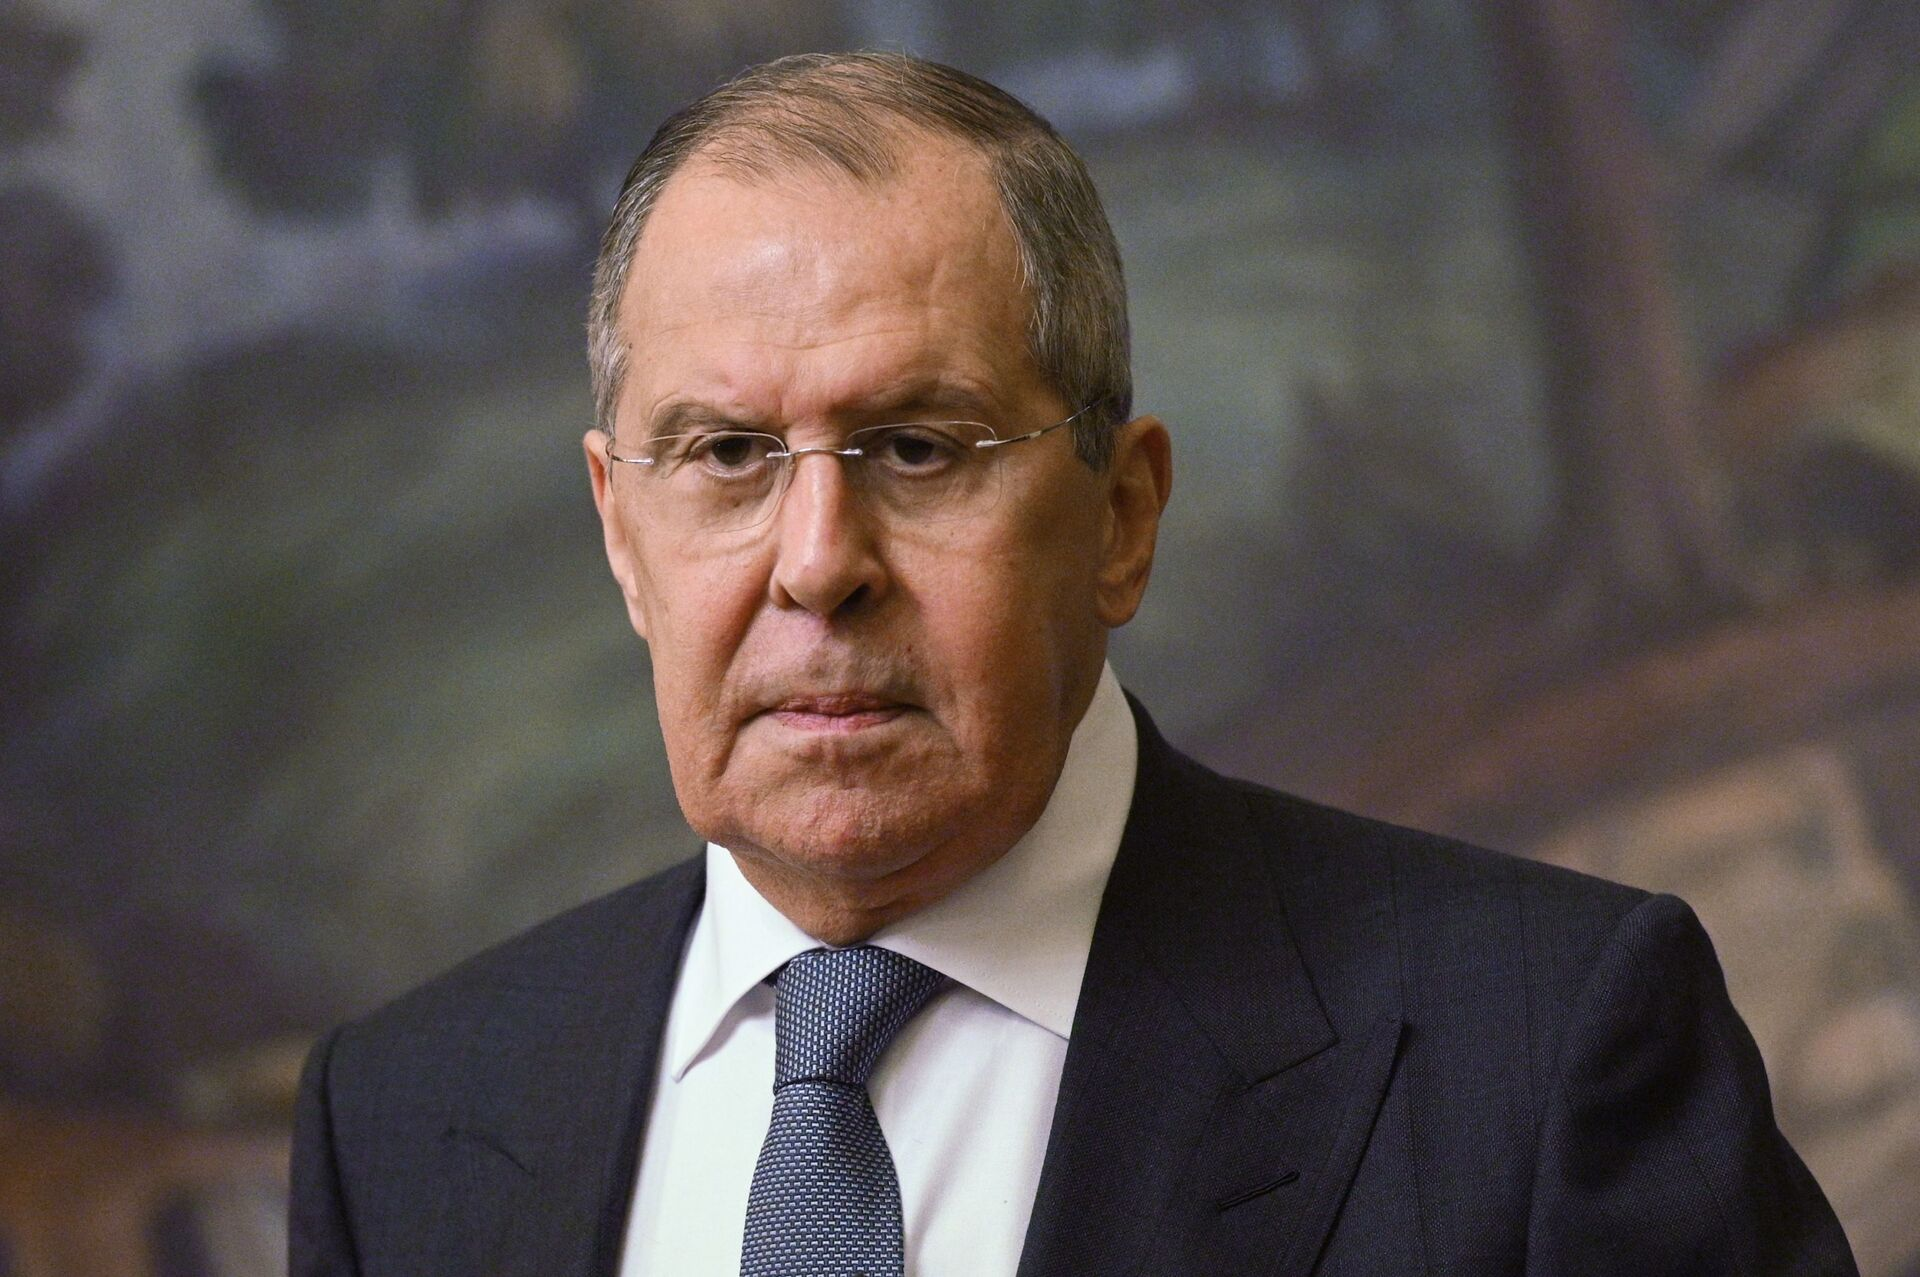 Russian Foreign Minister Sergei Lavrov at a press conference following a meeting in Moscow with the Minister of Foreign Affairs of the Kingdom of Bahrain Abdel Latyf bin Rashid Az-Zayani. - Sputnik International, 1920, 07.09.2021